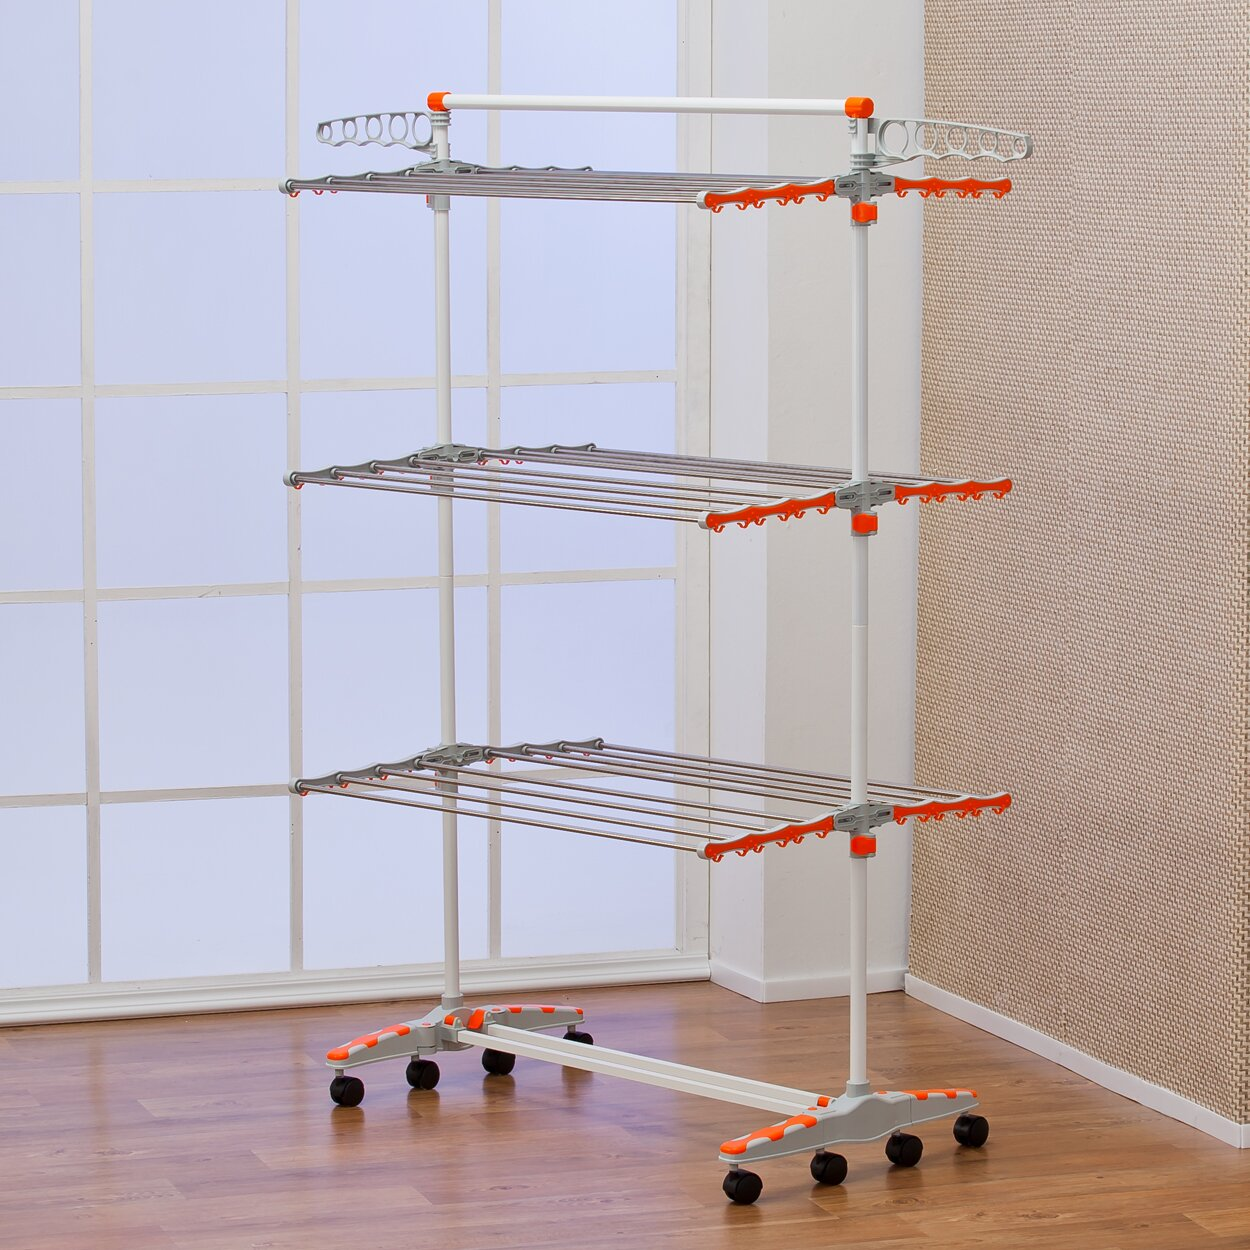 Badoogi Foldable Amp Compact Storage Clothes Drying Rack